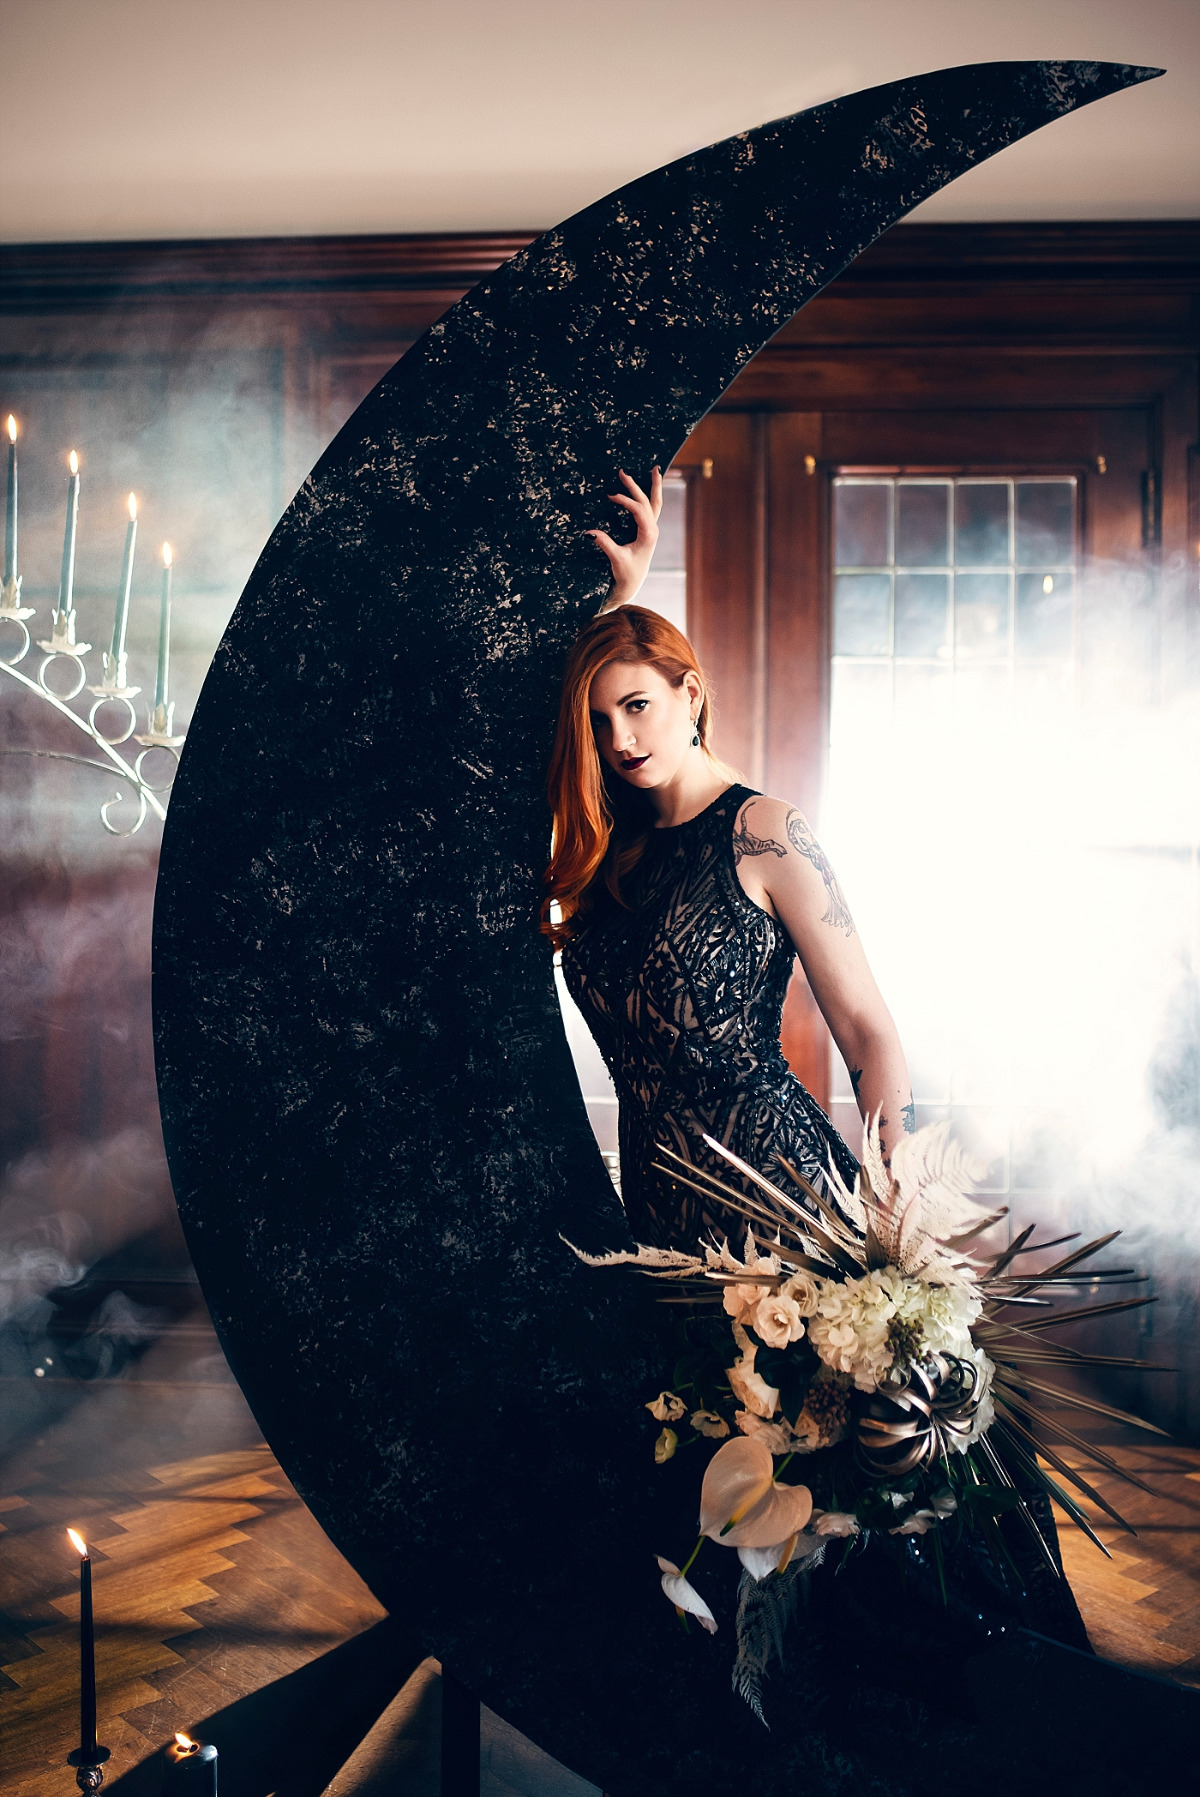 Dark and moody lunar wedding ideas